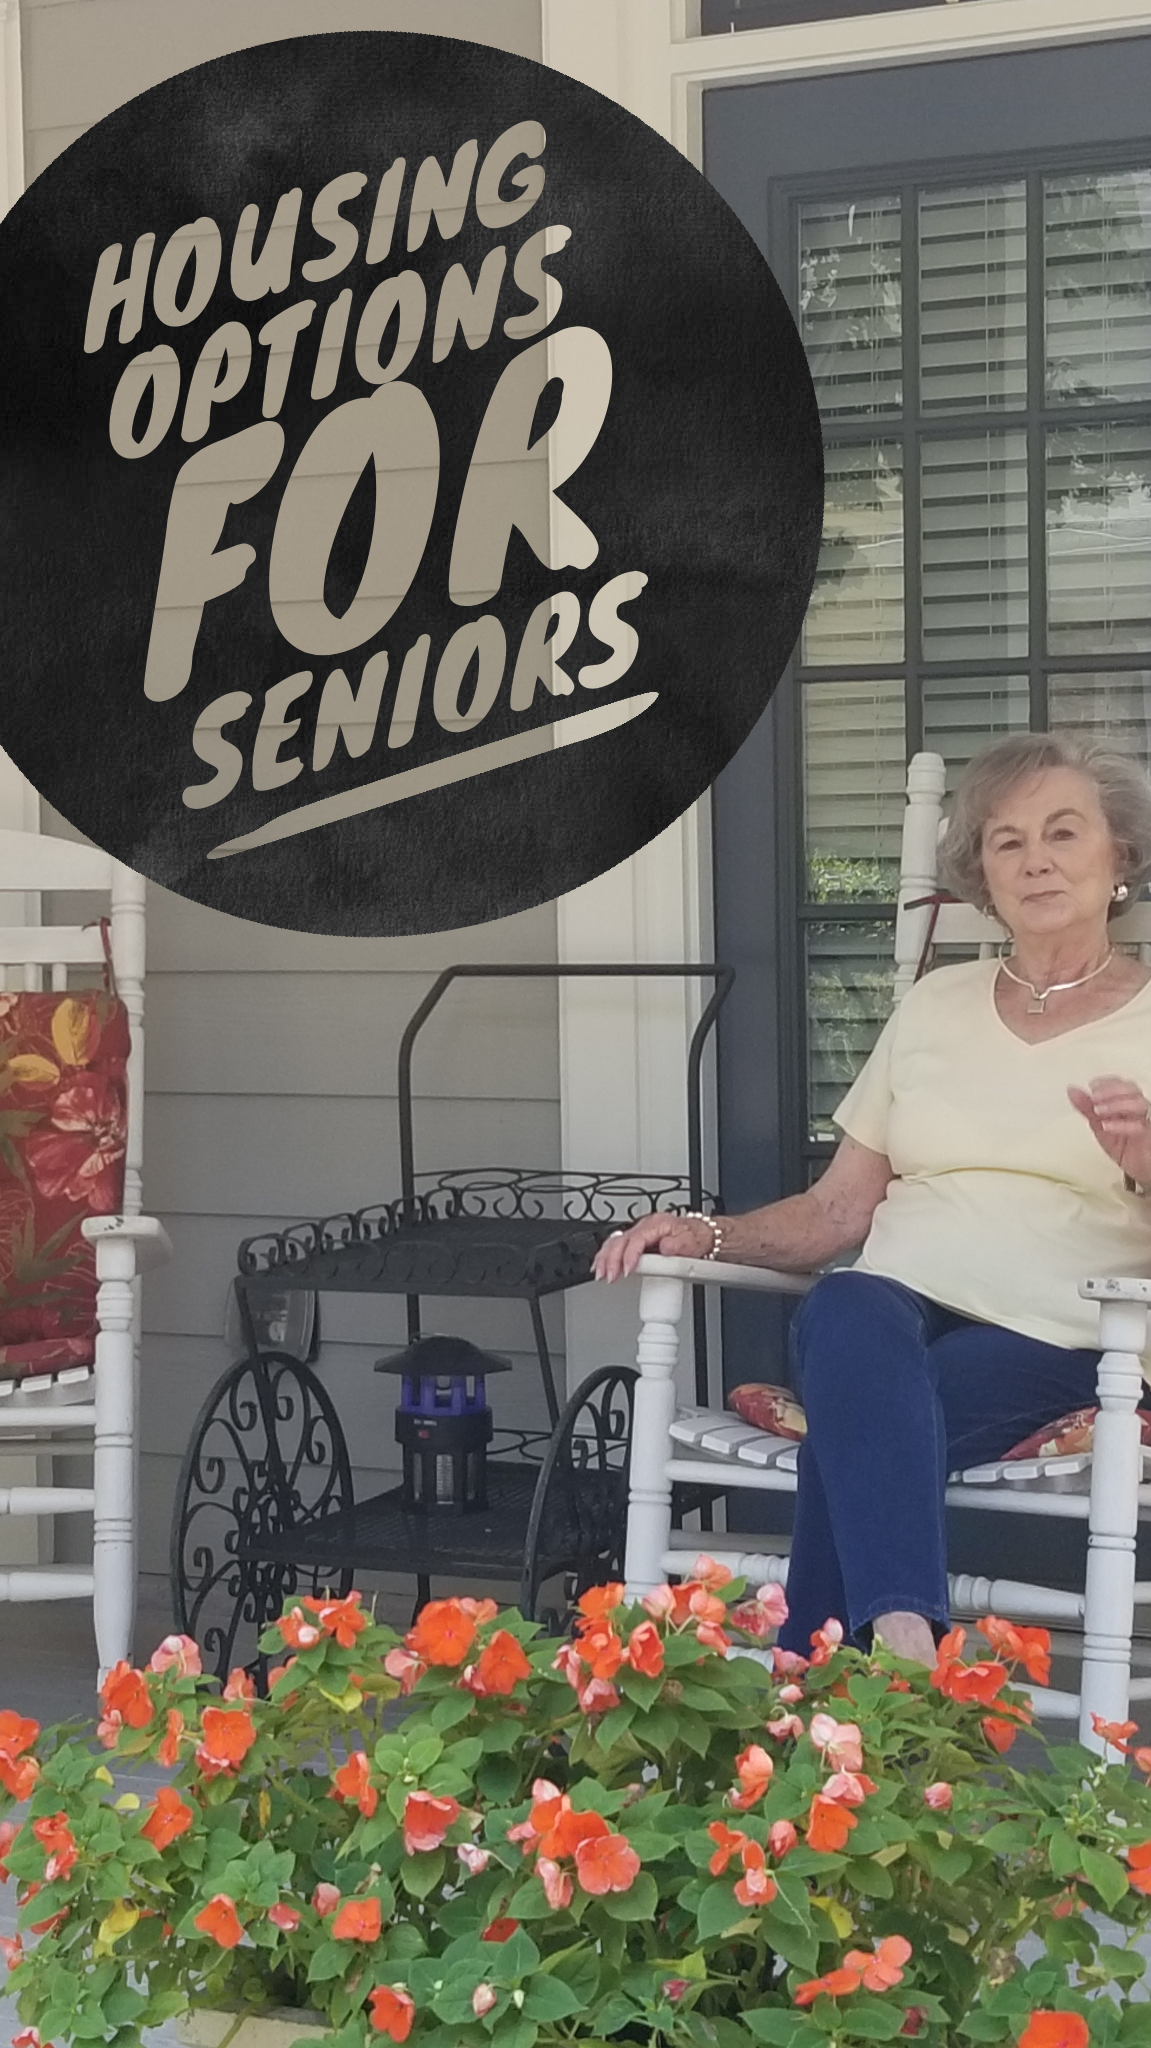 Housing Options For Seniors A Guide